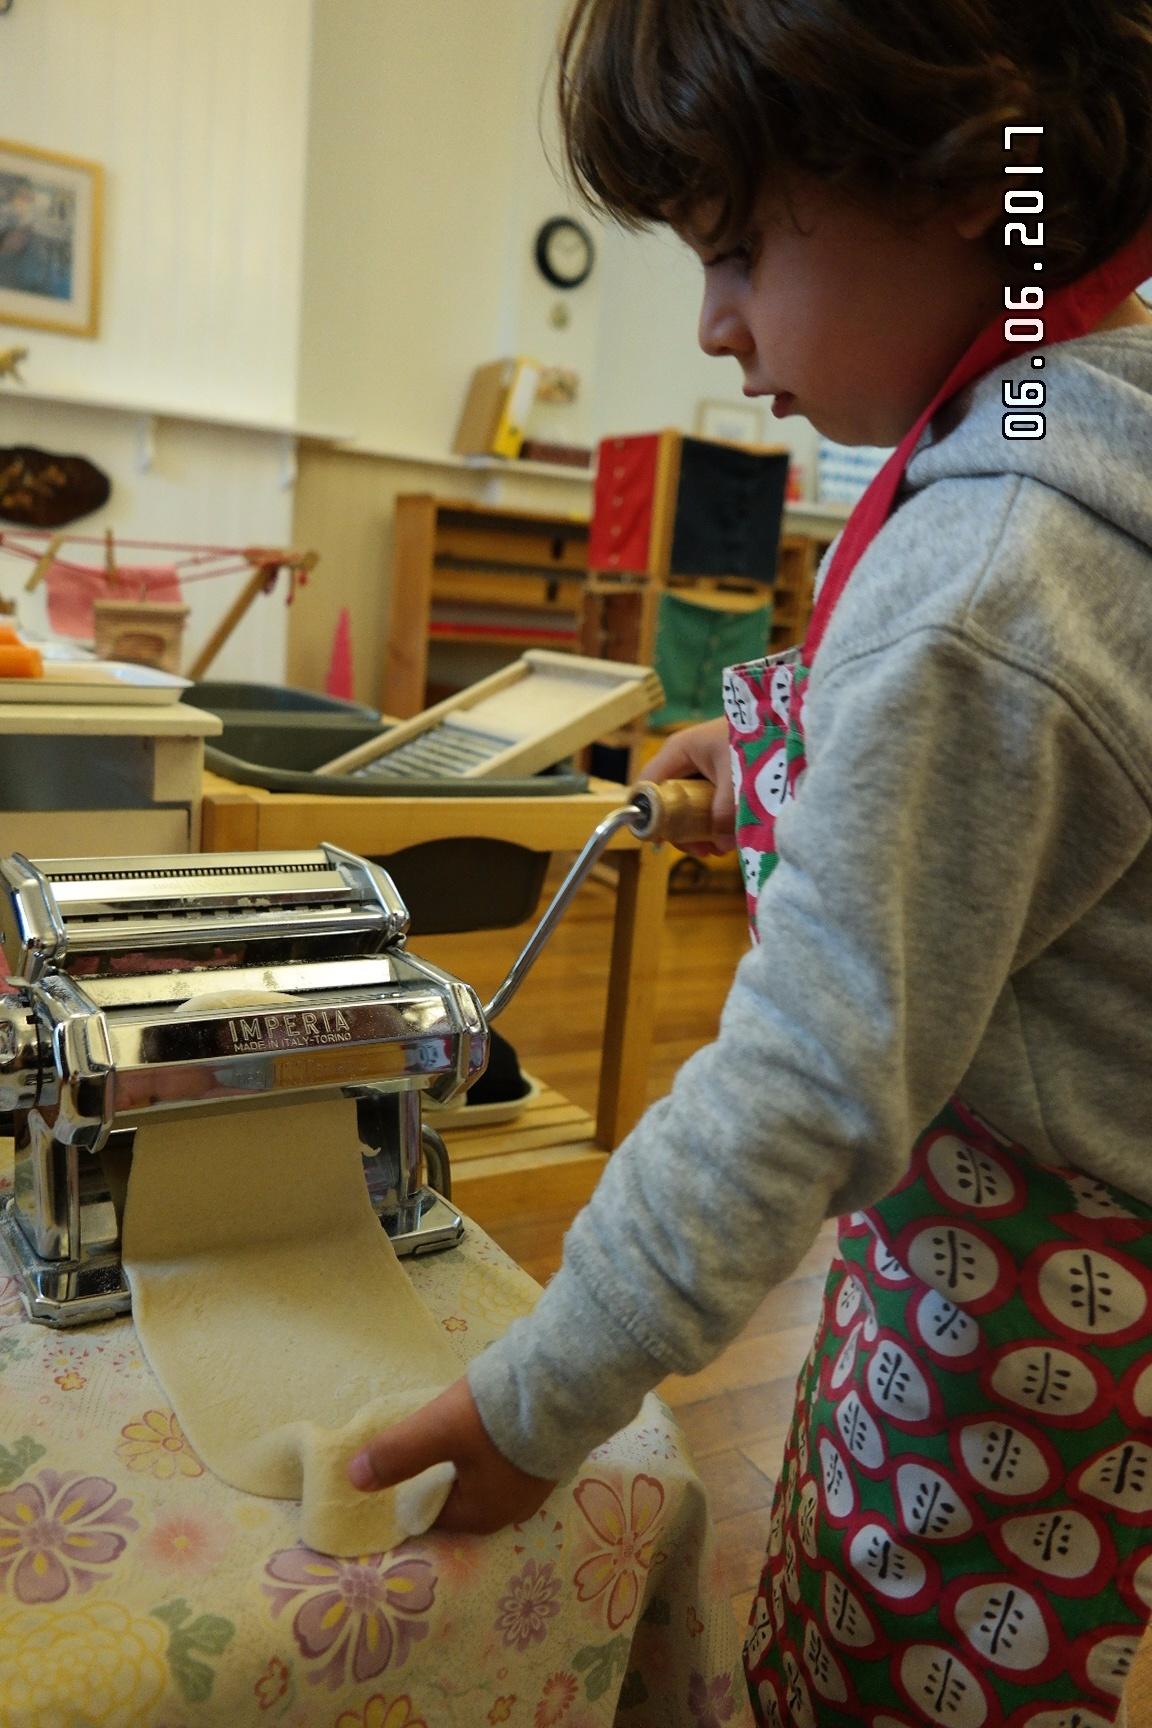 Pasta making activity